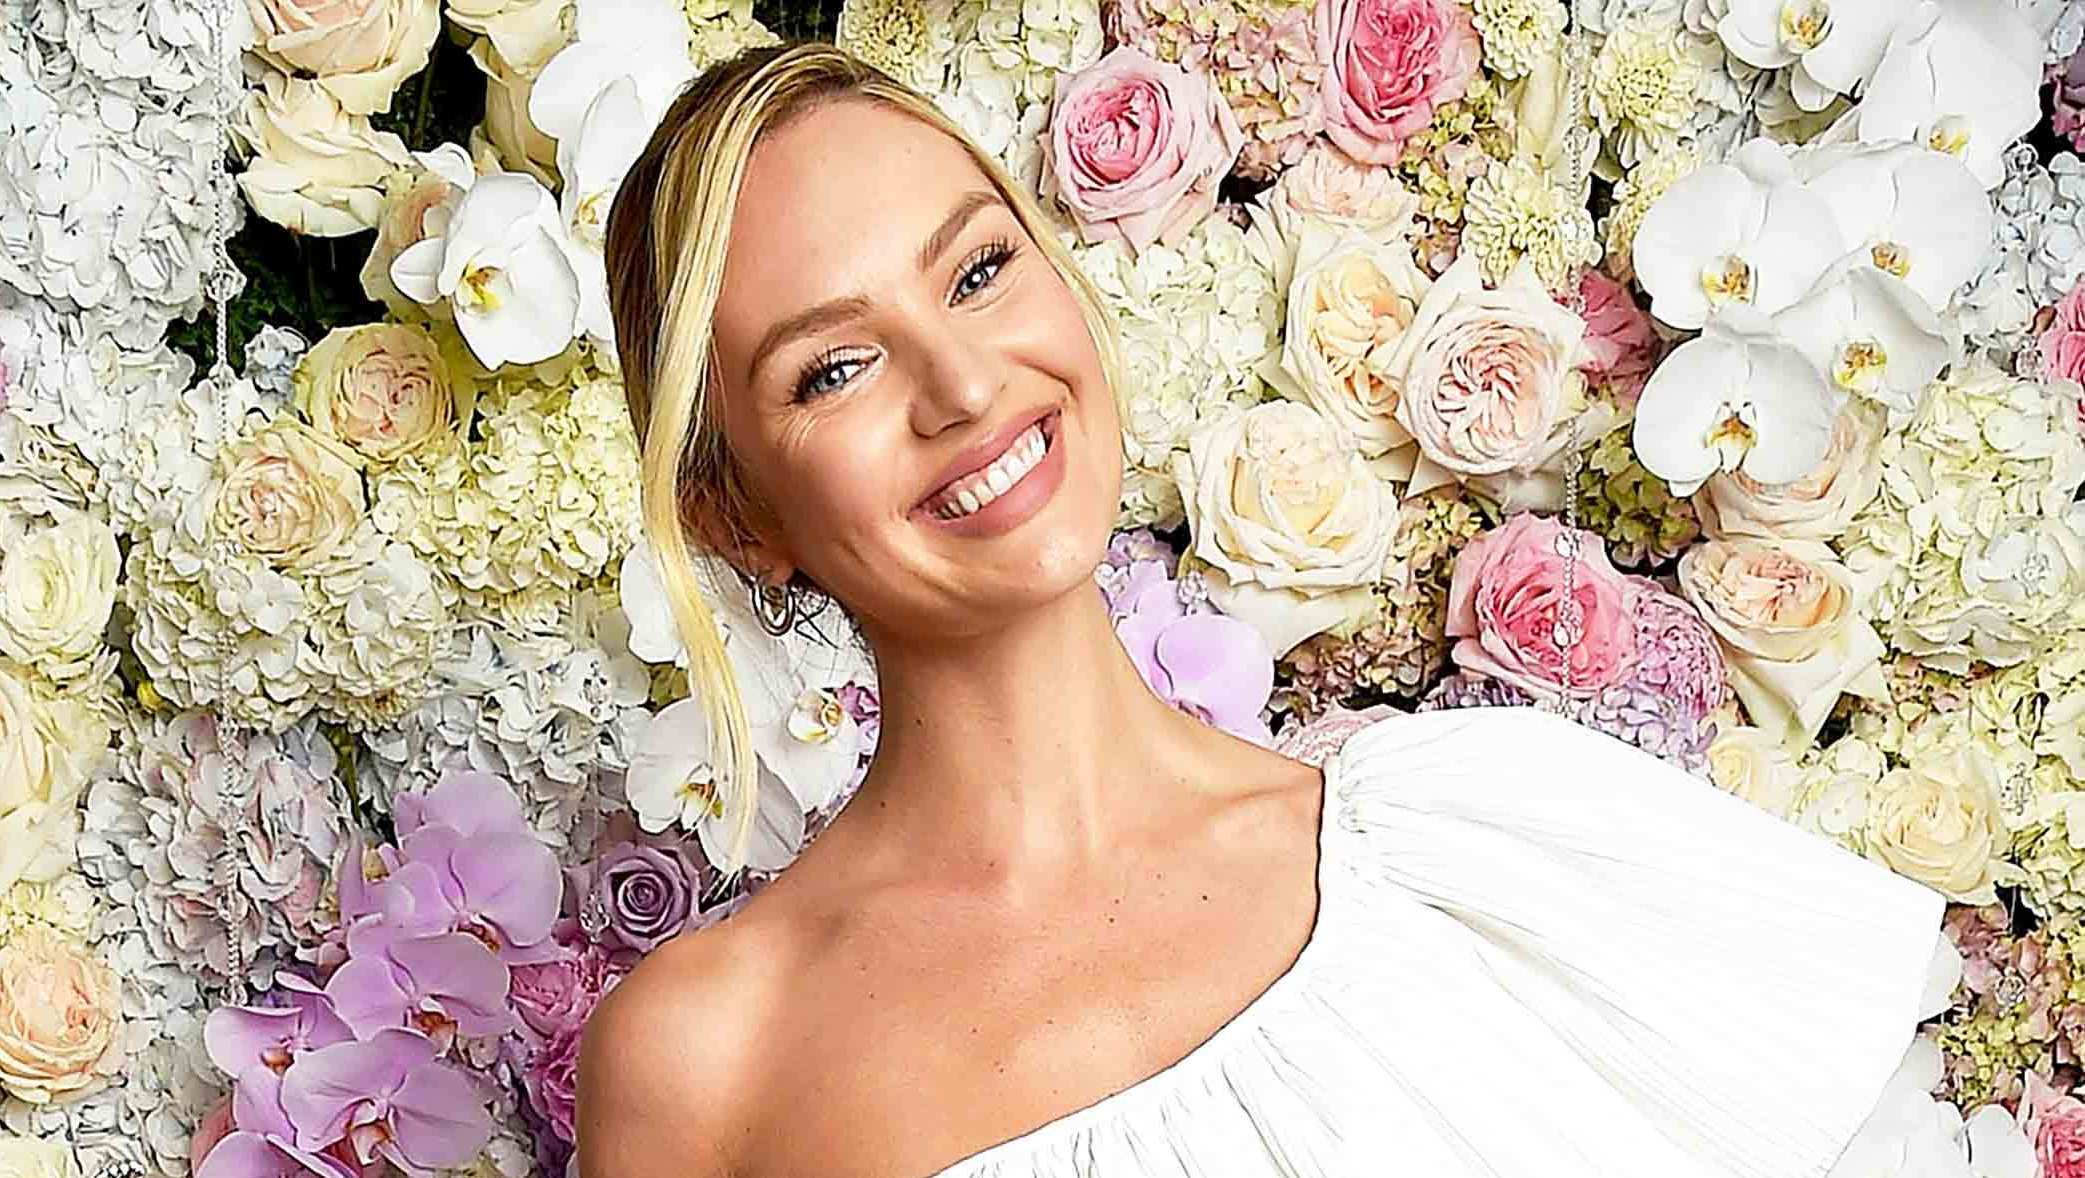 Candice Swanepoel launches Viva La Juicy Glace fragrance at The Edition Hotel in July 2017 in New York City.